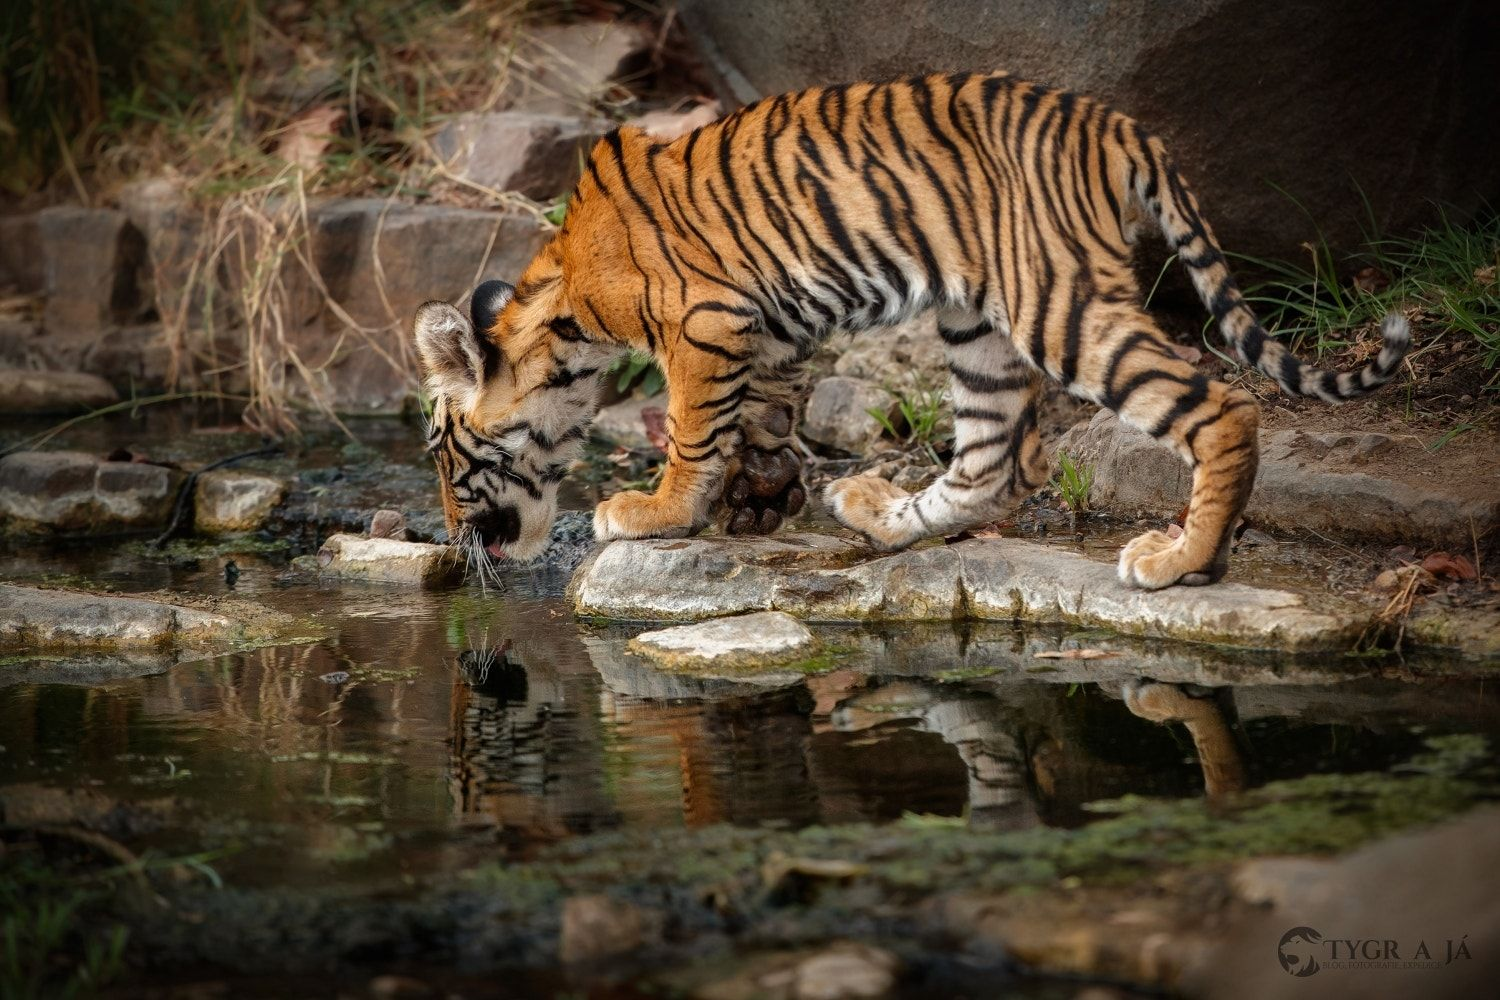 Snow White And The Tiger Mirror Mirror On The Wall Who S The Fairest Of Them All Www Tiger And Me Com Tiger Big Cats Animals